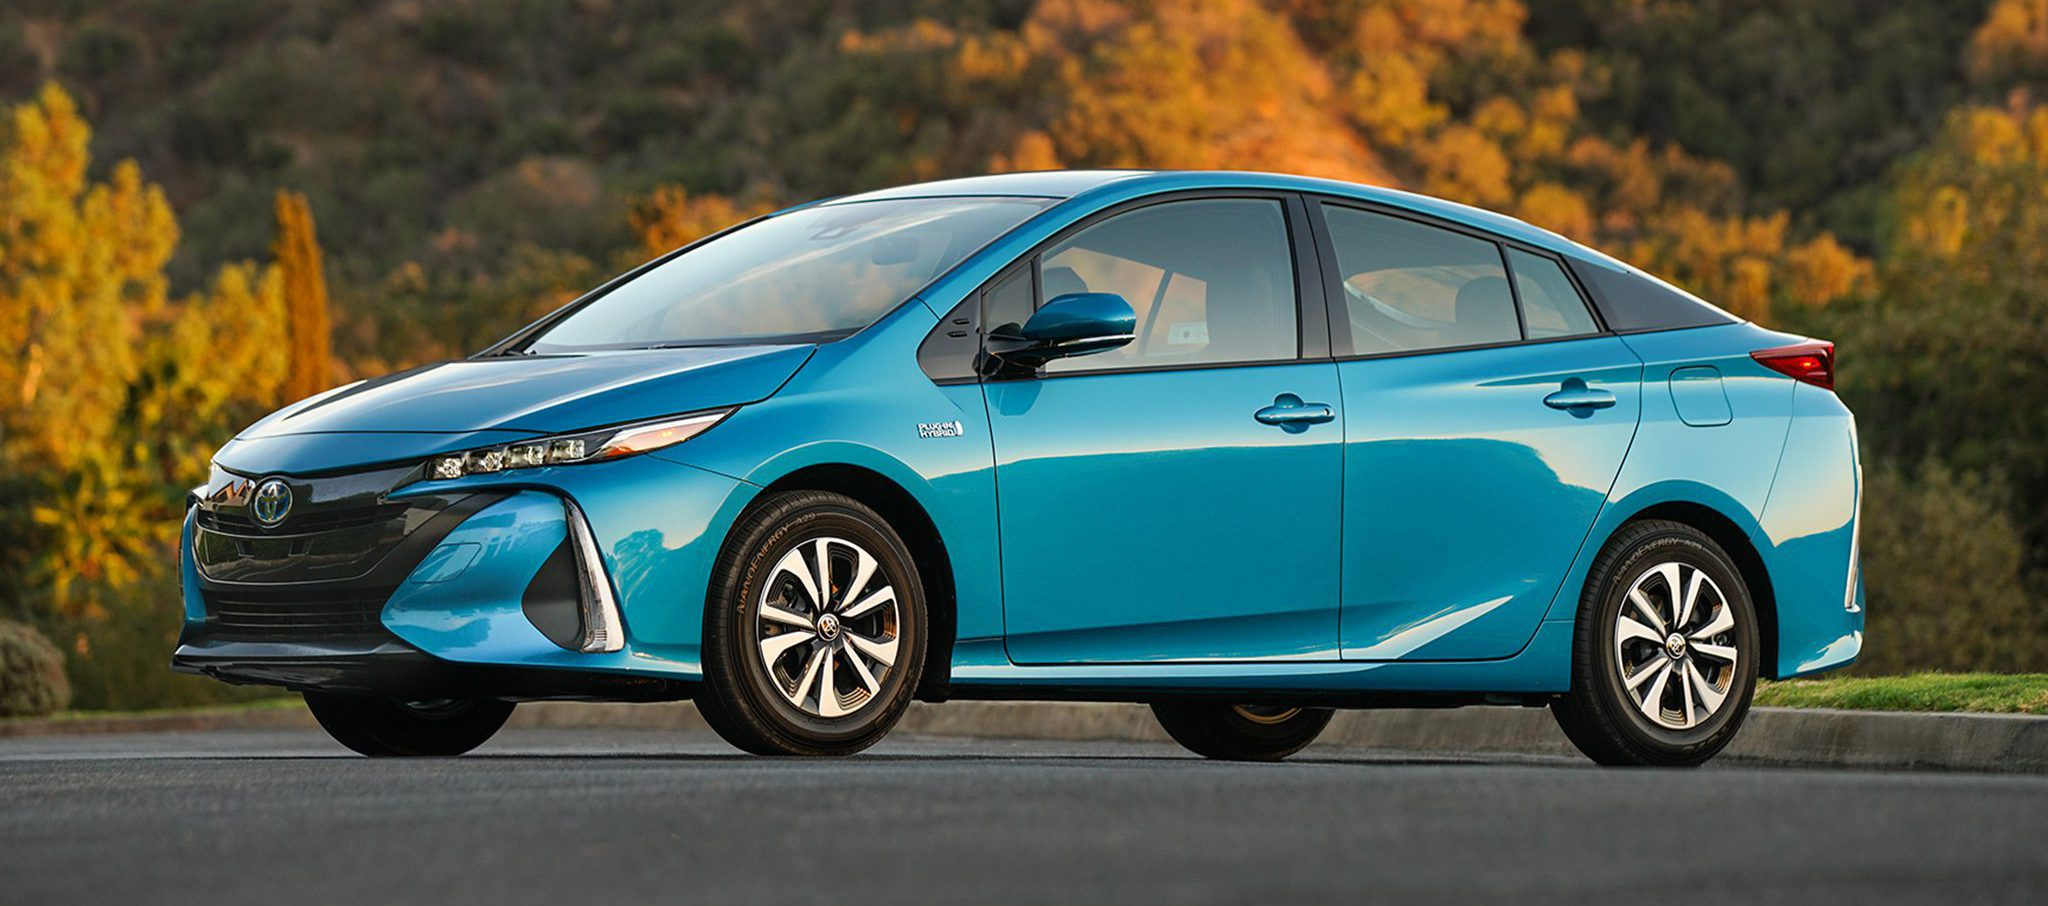 Toyota: 'nobody is selling electric vehicles at a profitable margin' – wrong!